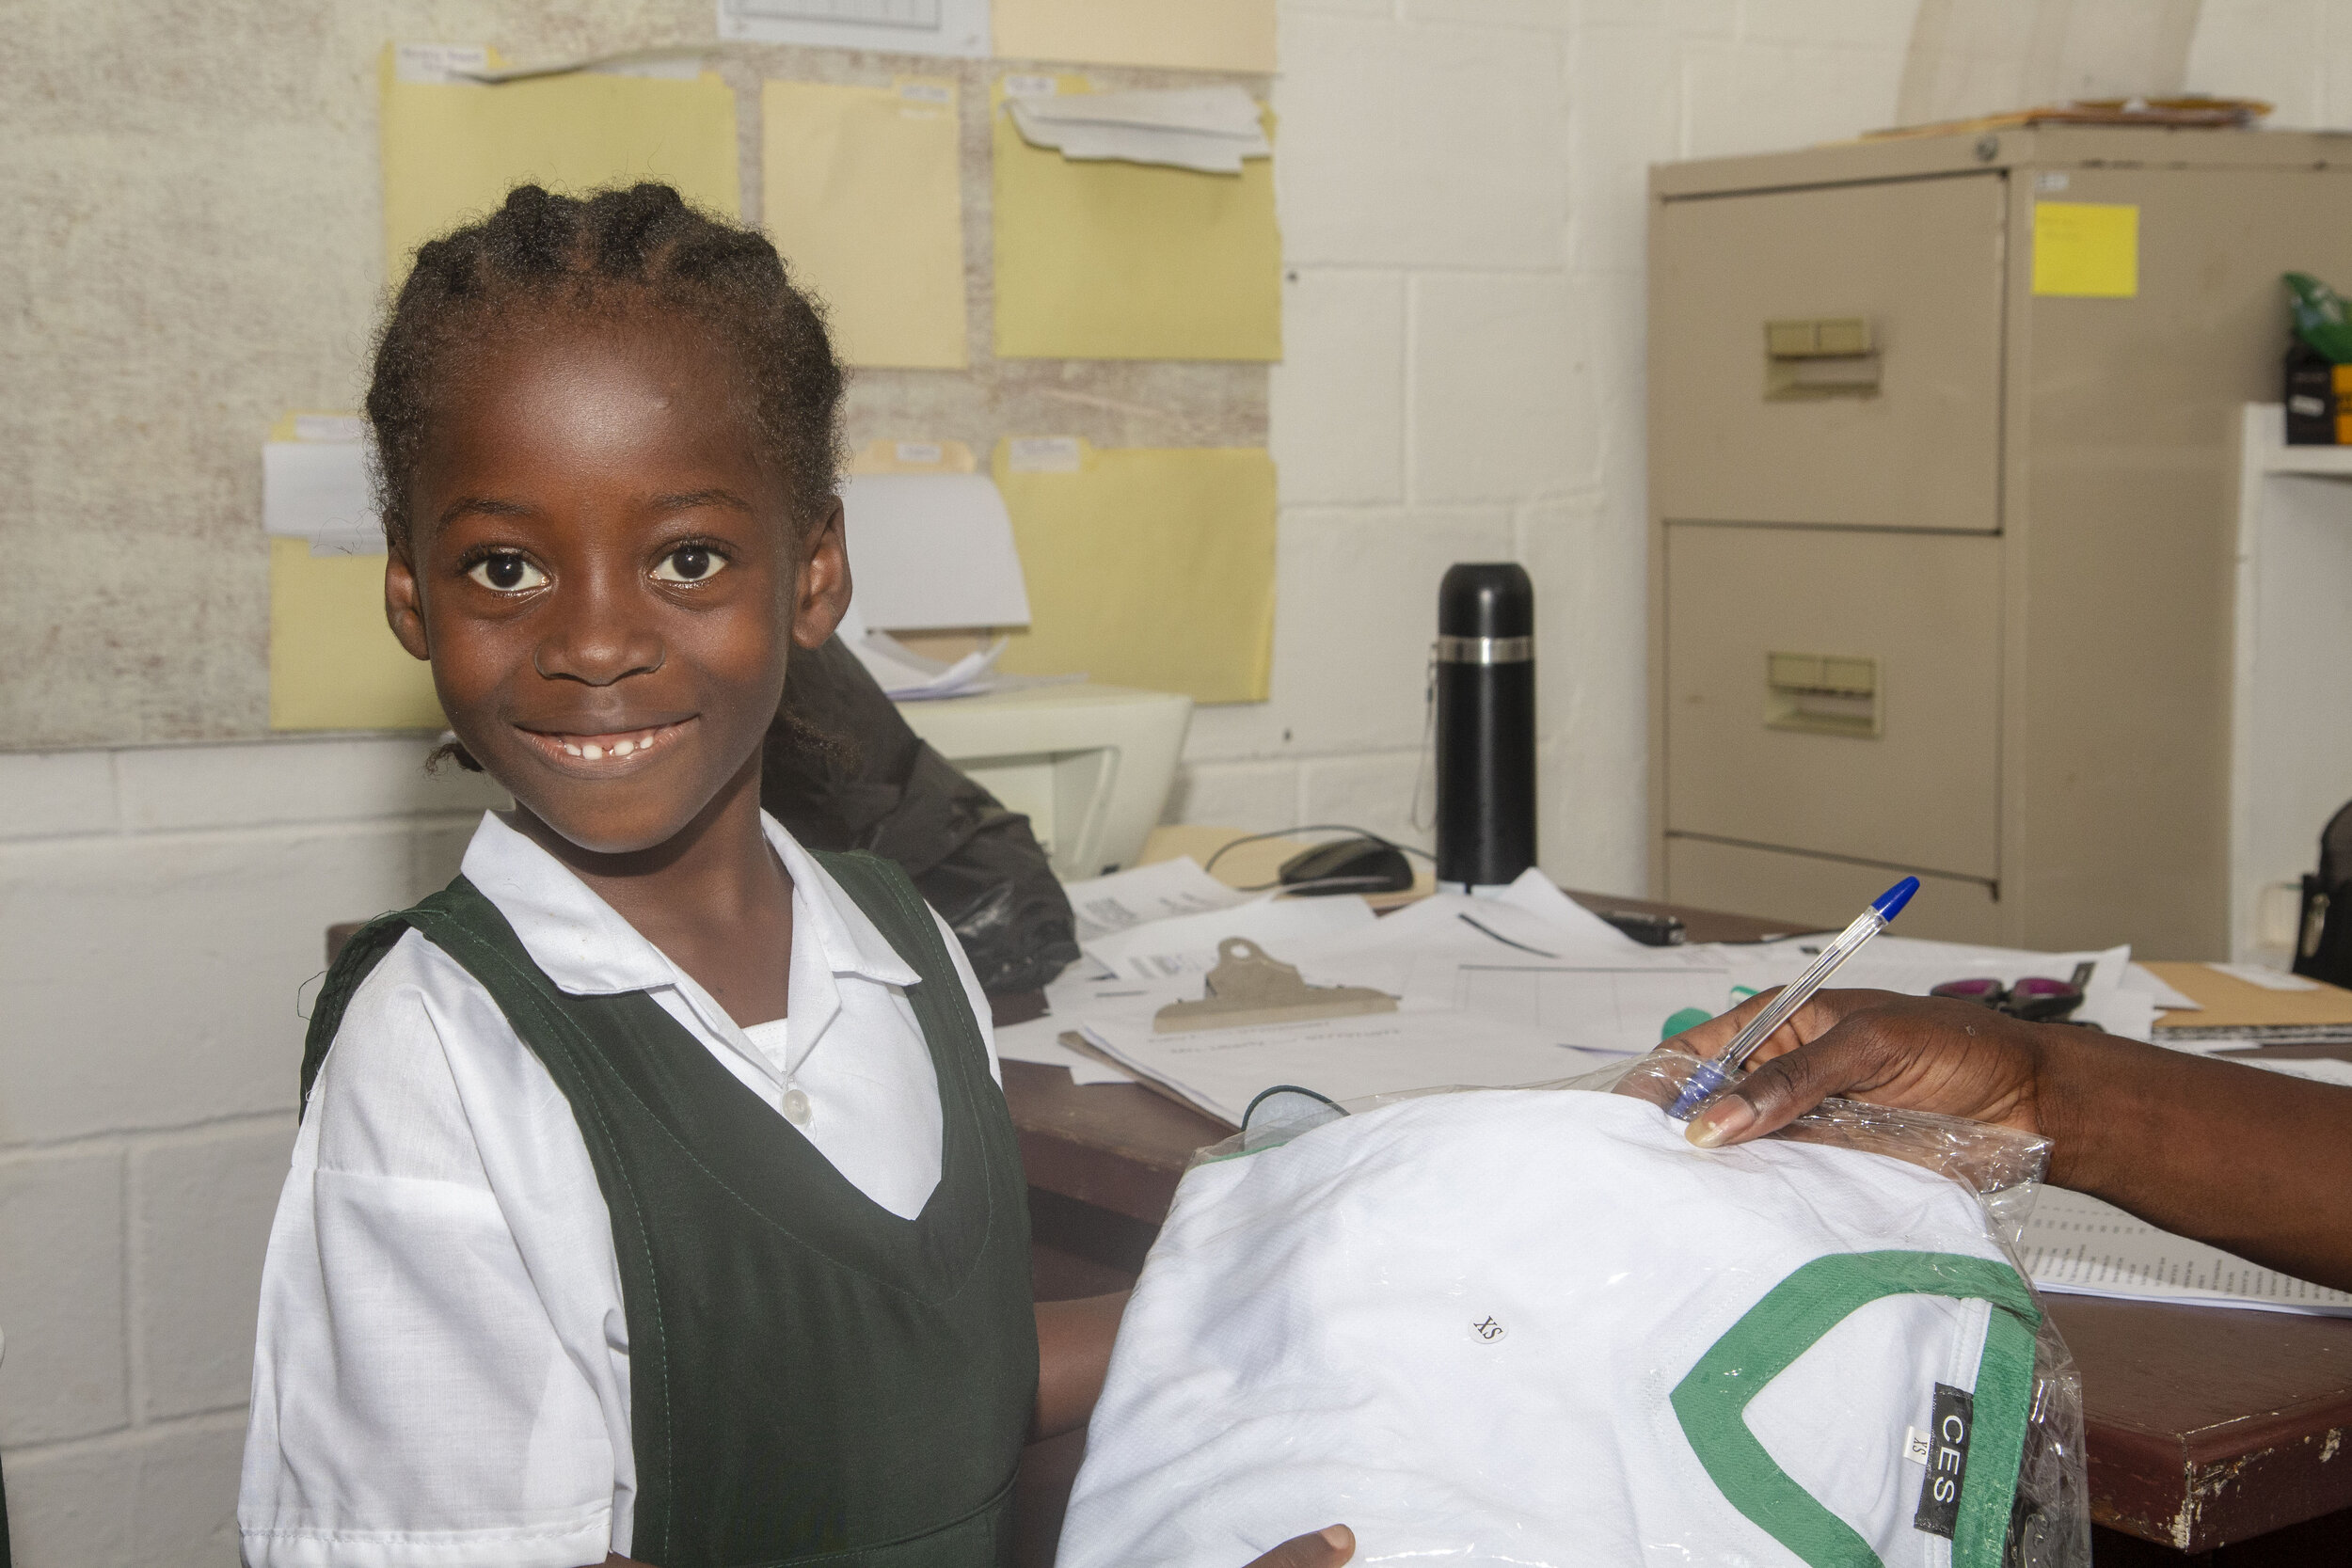 One young student is happy to receive her brand-new P.E. uniform.